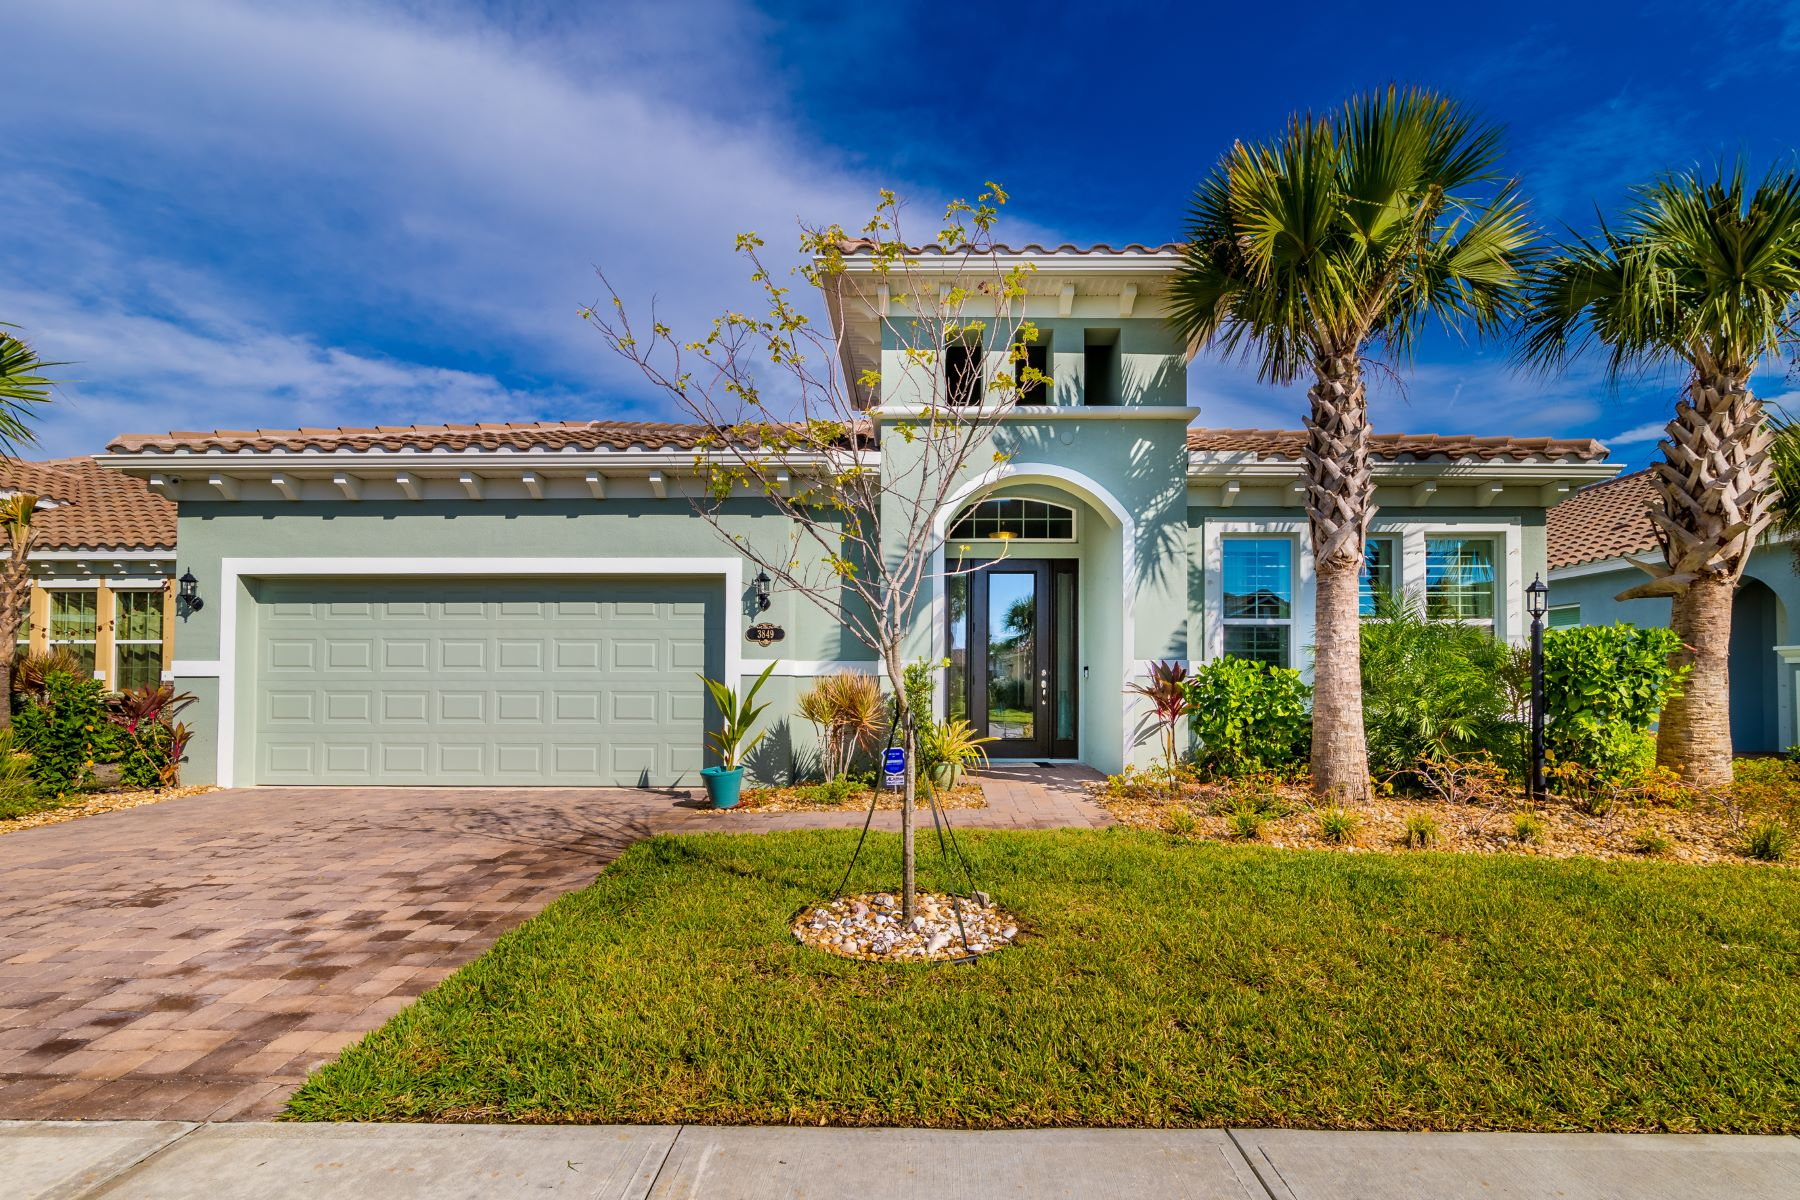 Single Family Home for Sale at Beautiful Home in Beach Oriented Community 3849 Poseidon Way Melbourne, Florida 32903 United States